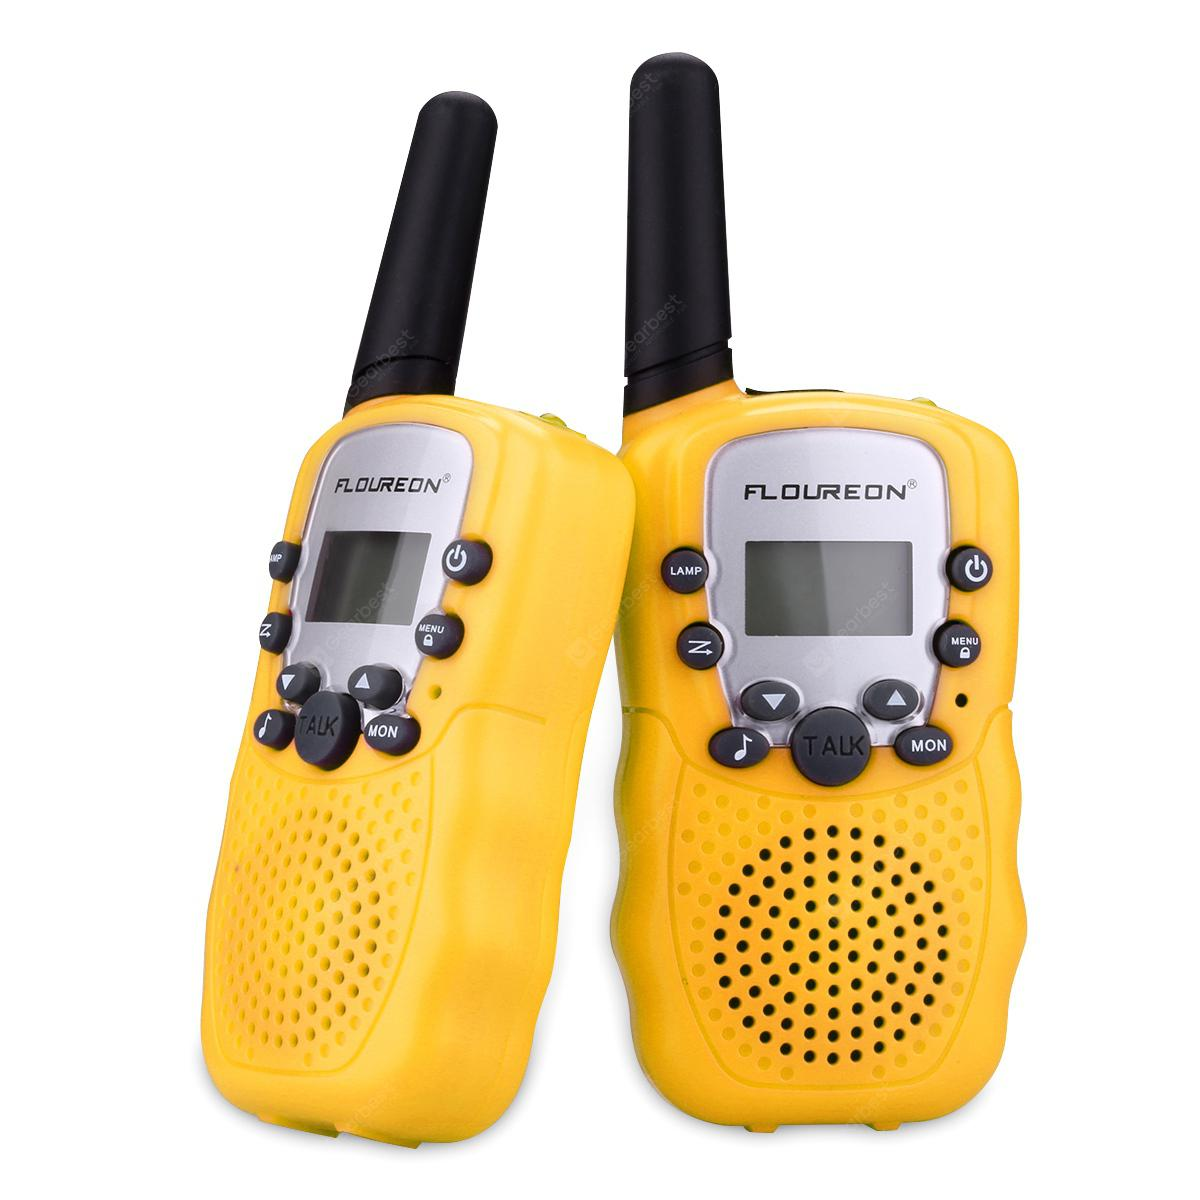 FLOUREON 8 Channel Twin Walkie Talkies UHF400-470MHZ 2-Way Radio 3 Km Range Yellow - YELLOW